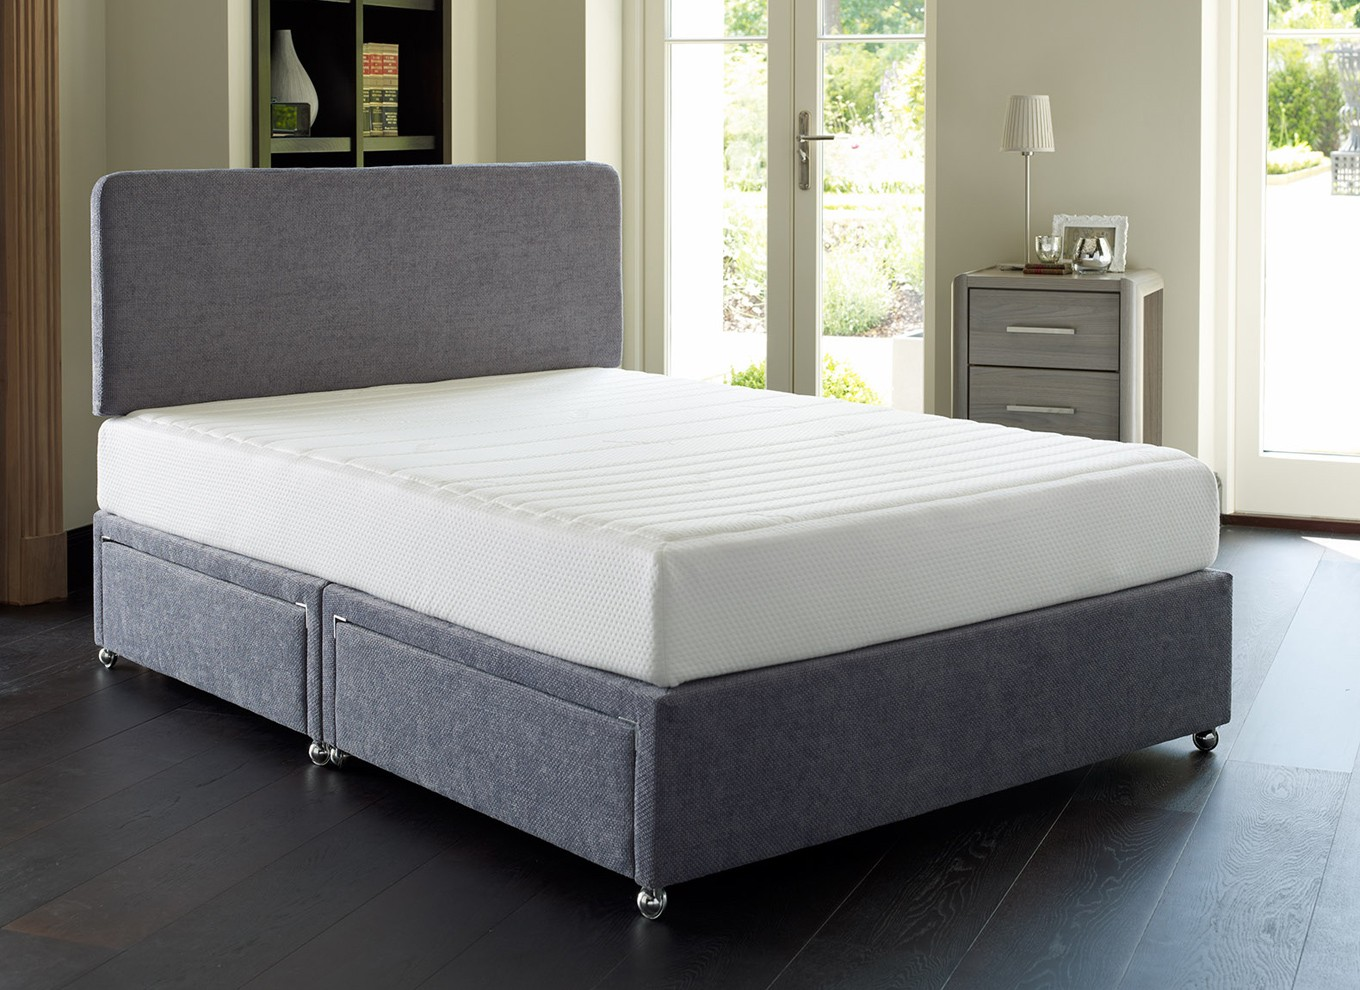 5 0 king creation equilibrium memory foam divan bed for Divan king bed